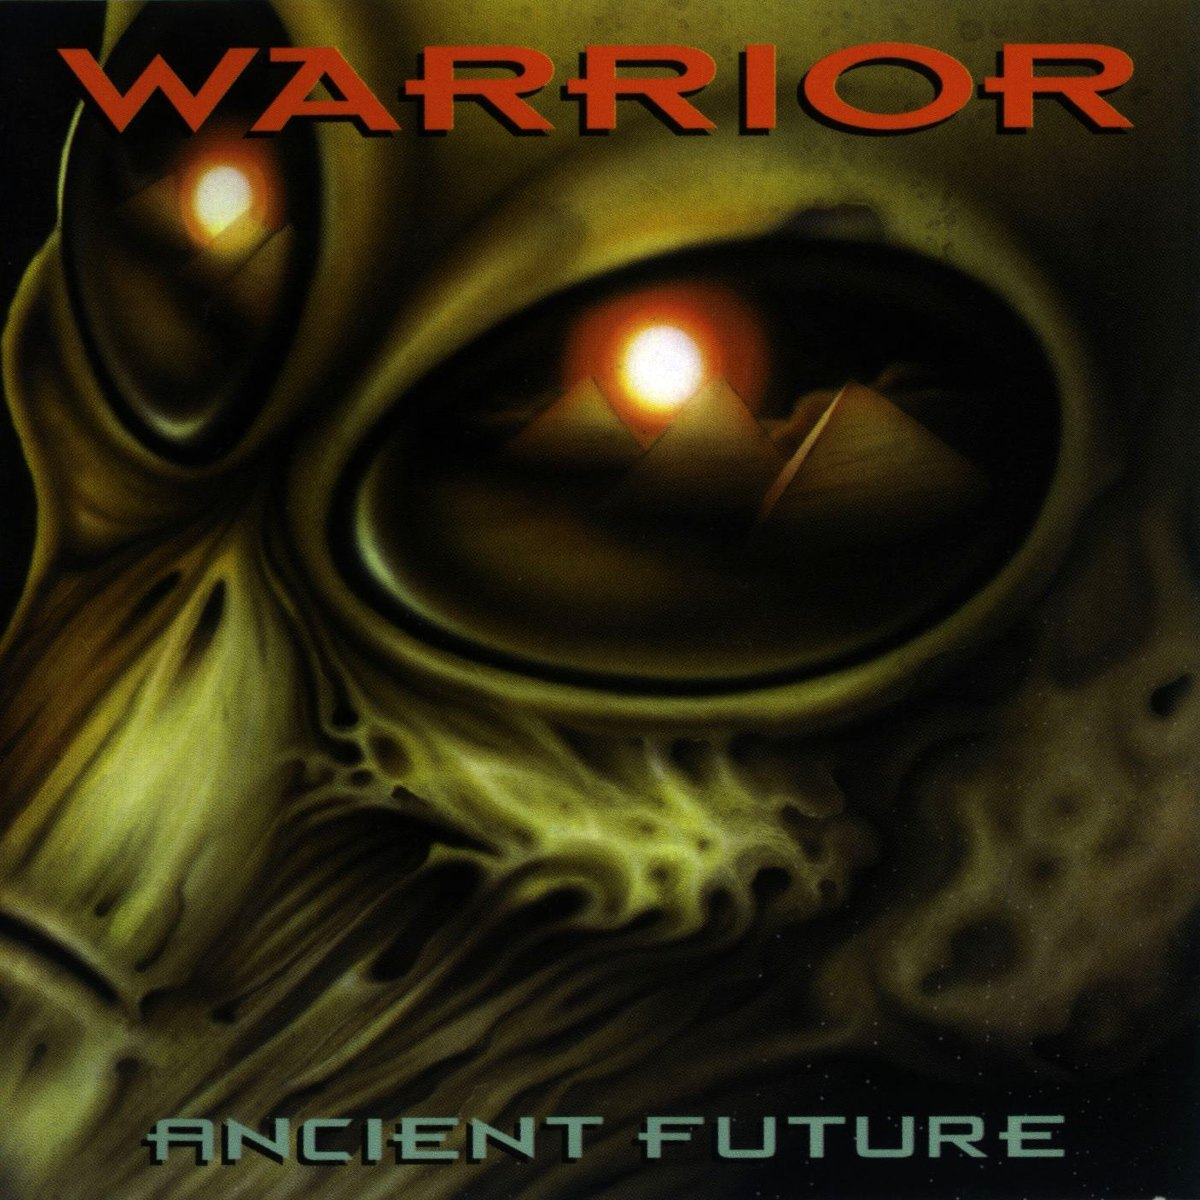 Warrior - Ancient Future